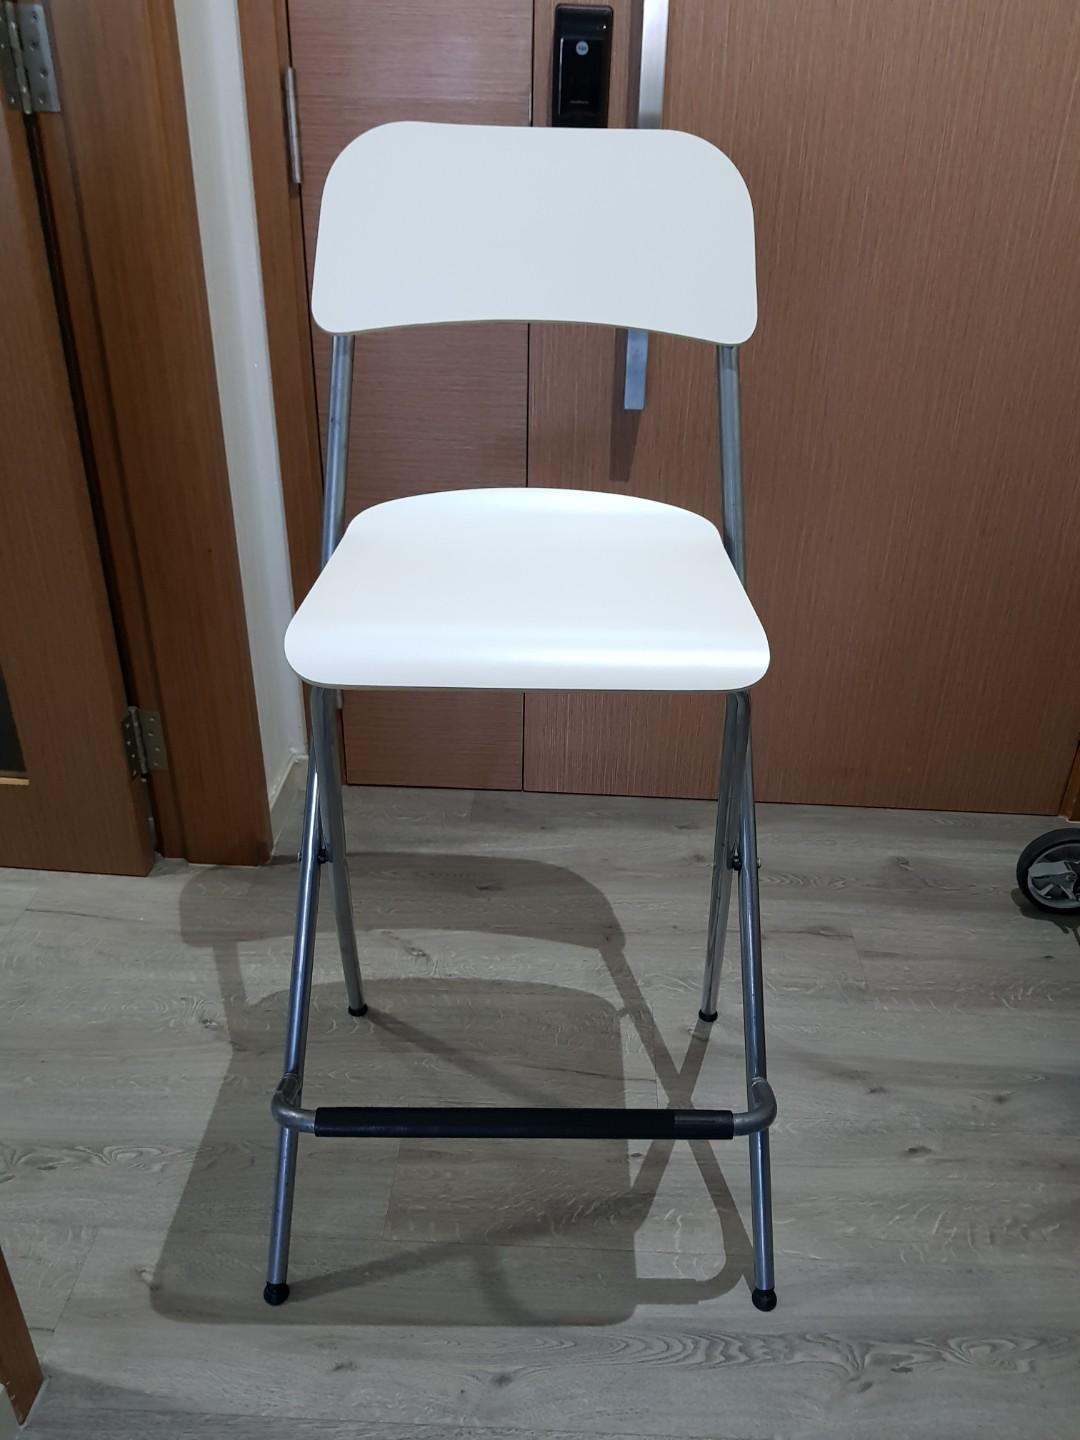 Strange Ikea Foldable High Chair Furniture Tables Chairs On Caraccident5 Cool Chair Designs And Ideas Caraccident5Info